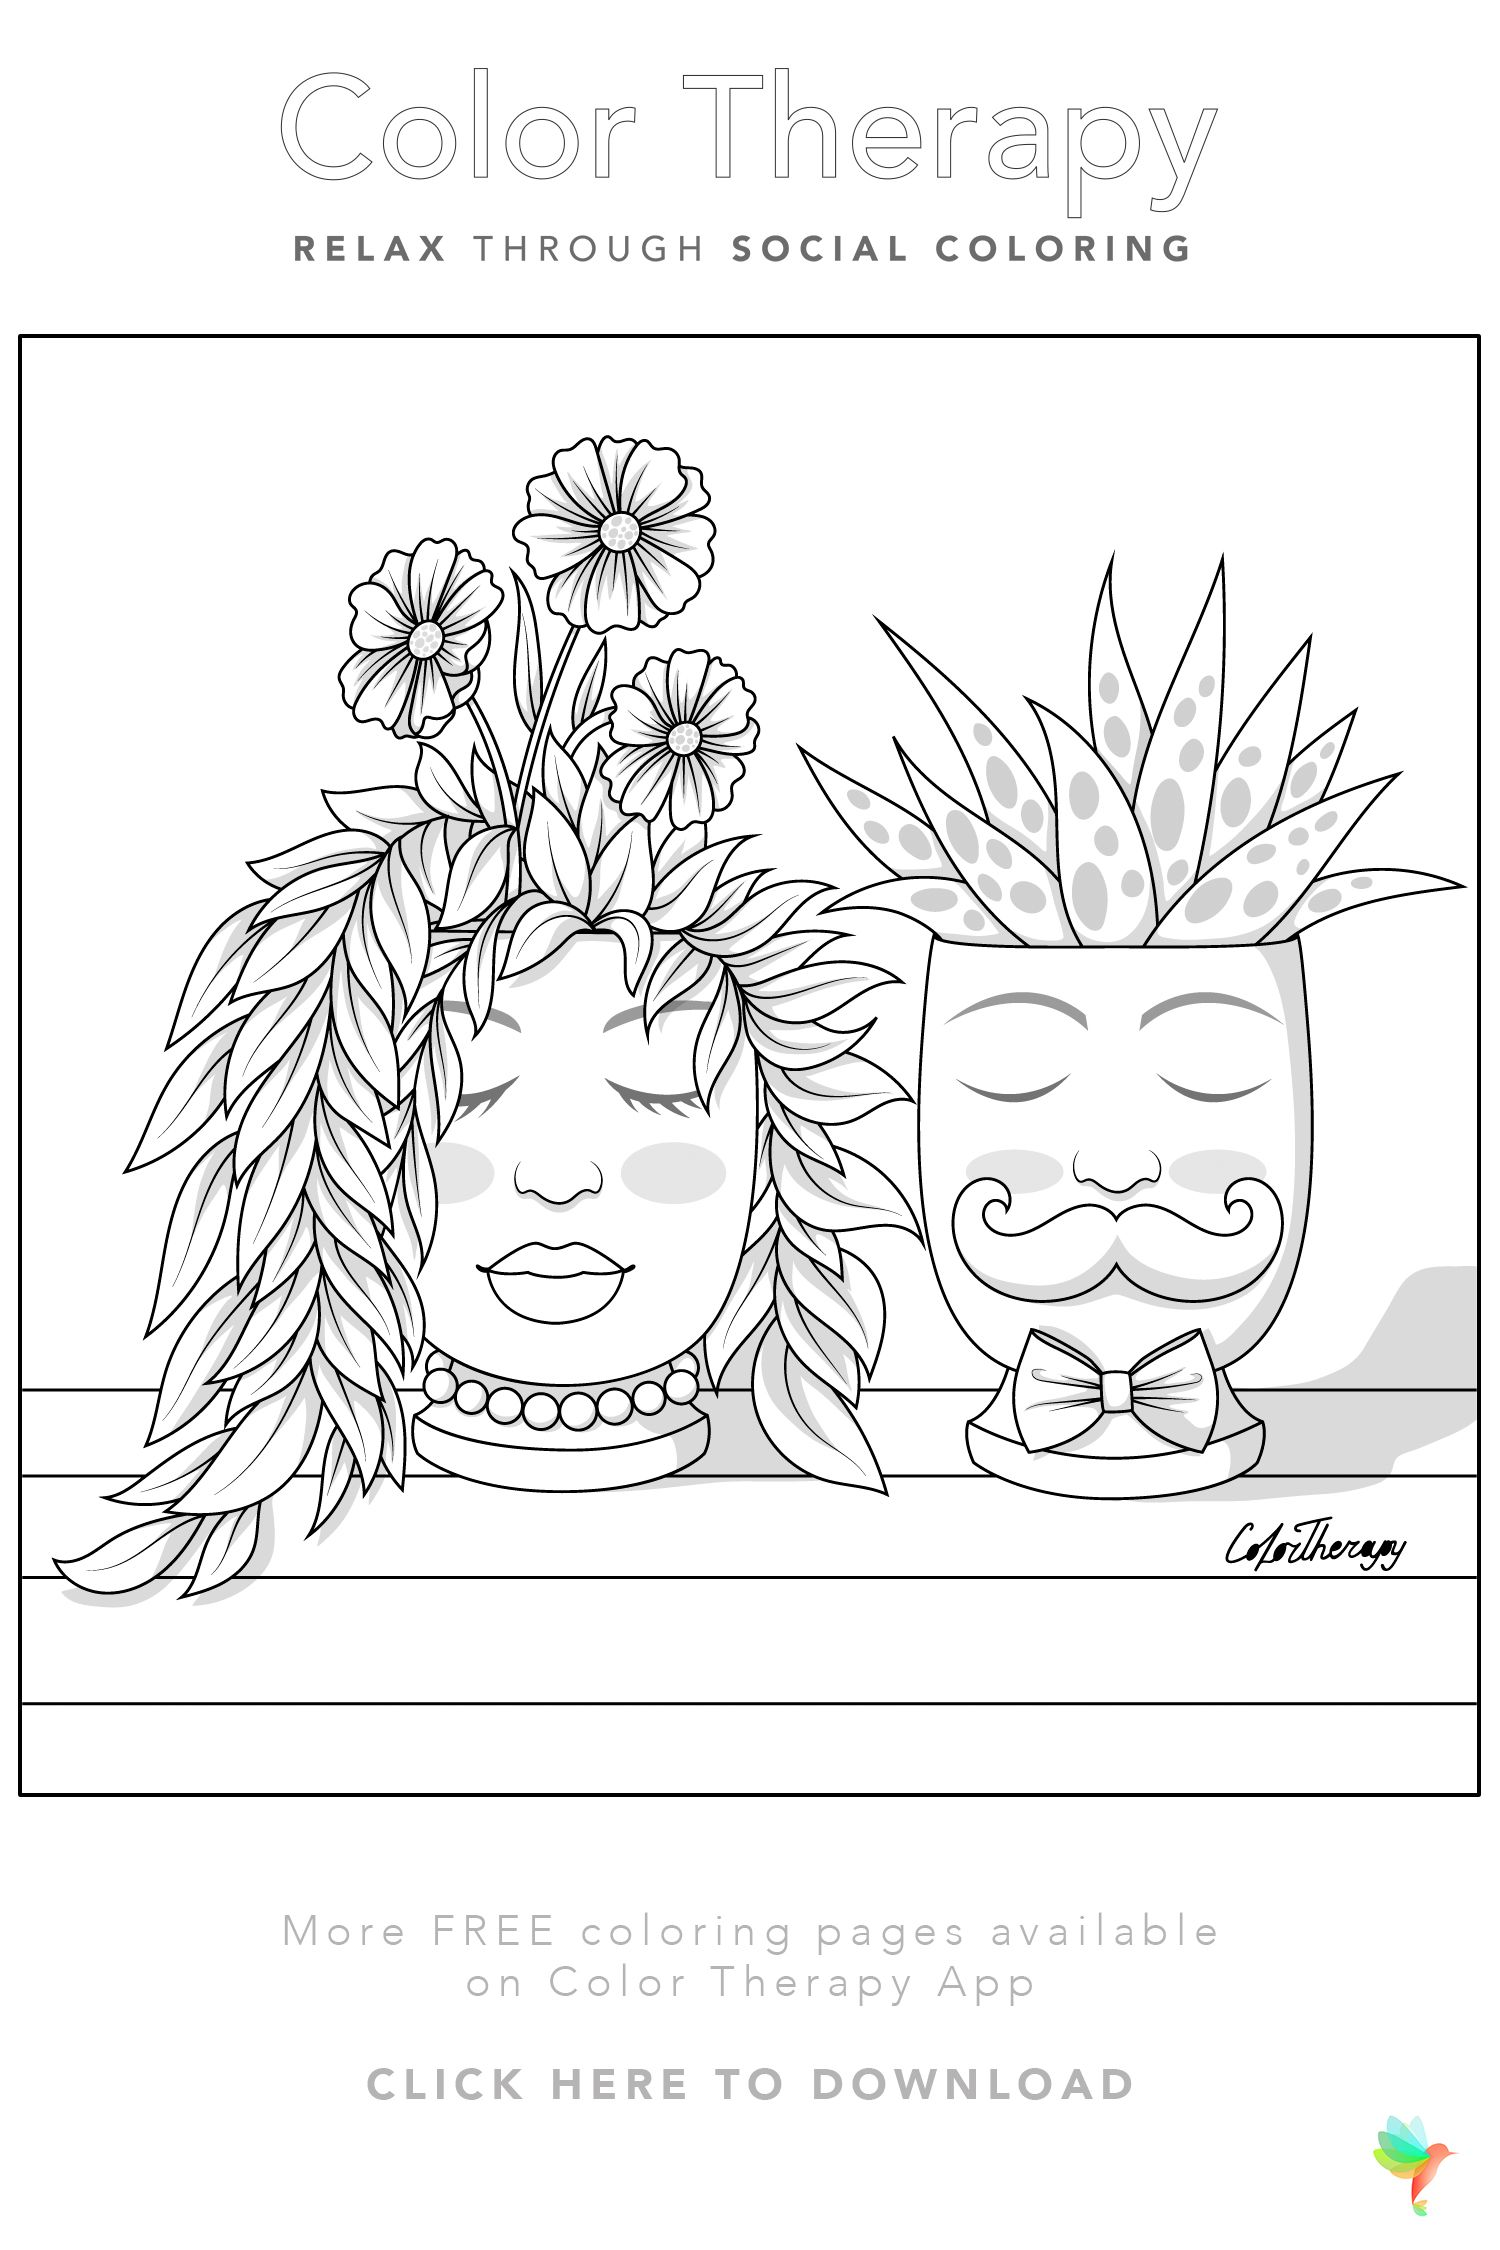 Color Therapy Gift Of The Day Free Coloring Template Love Coloring Pages Coloring Books Coloring Pages